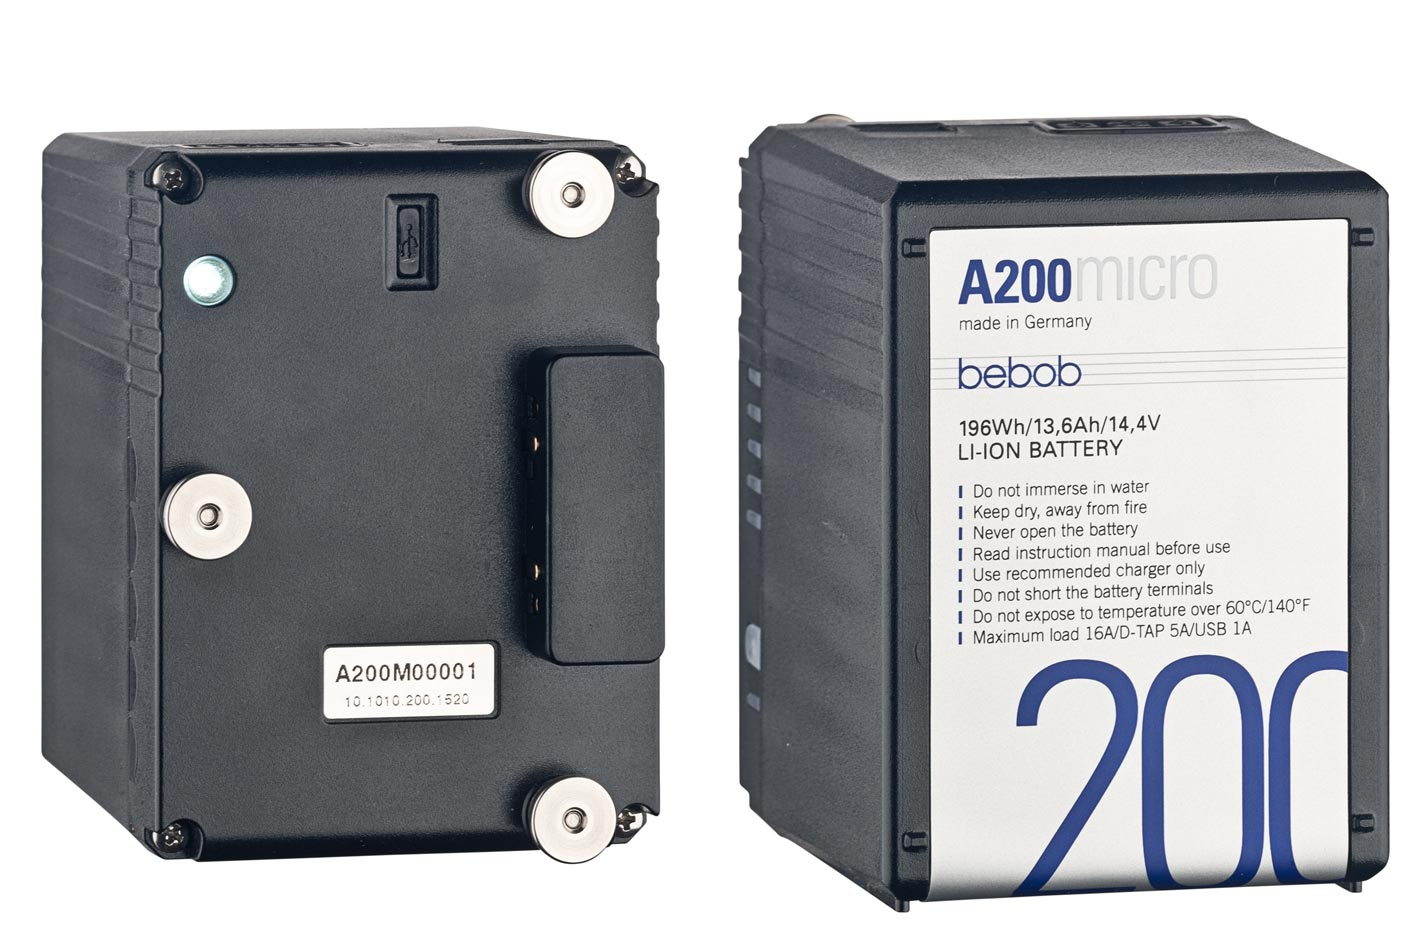 Micro monsters: new 200 Wh battery packs from bebob